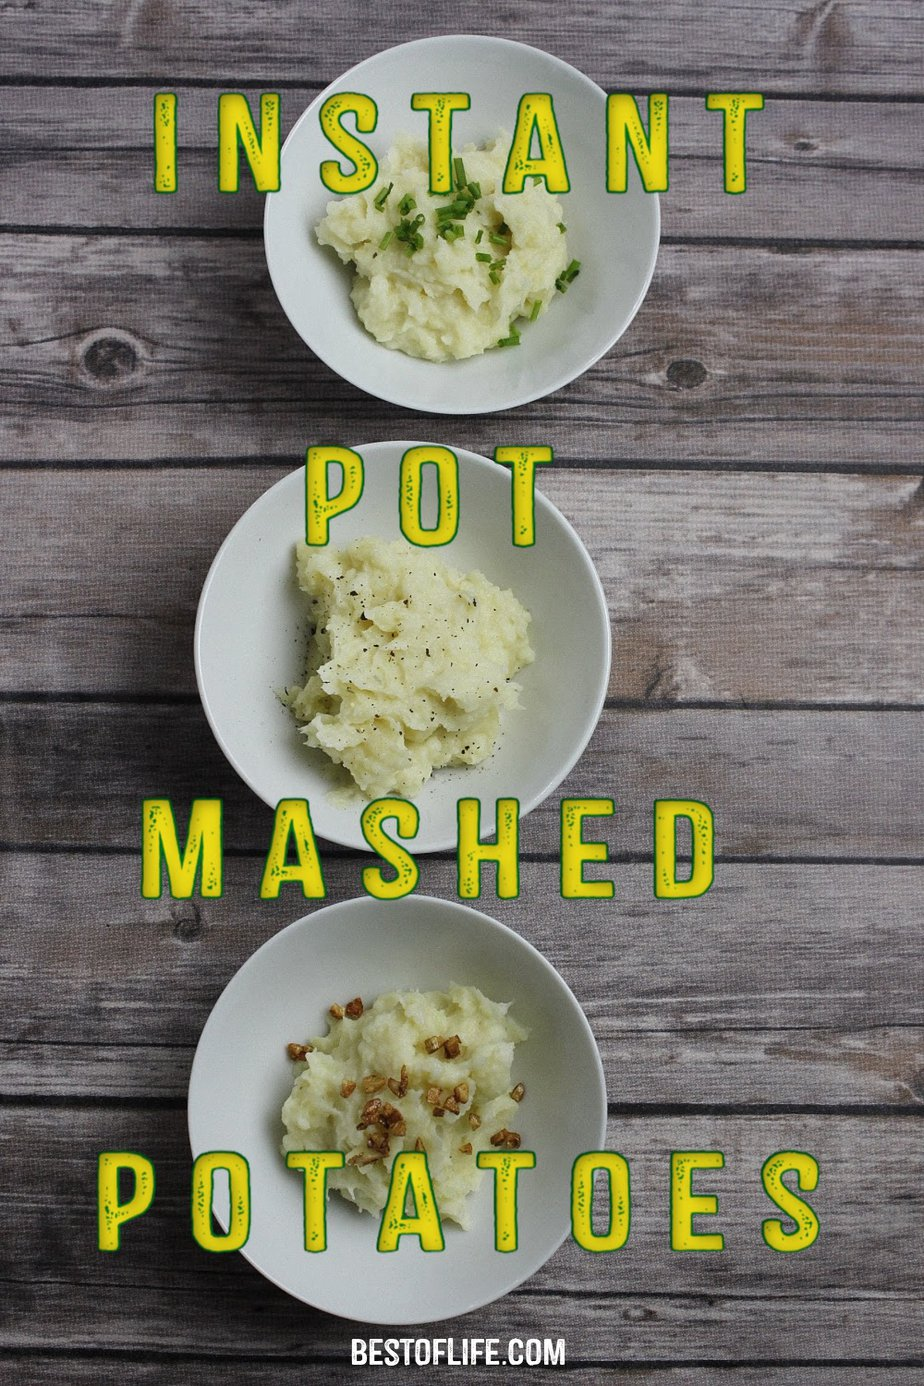 Our easy instant pot mashed potatoes recipe will quickly become a staple recipe in your weekly meal planning! The potatoes come out perfect every time and clean up is a breeze! Instant Pot Recipes | Side Dish Recipes | Instant Pot Side Dish Recipes | Instant Pot Potatoes Recipe | Mashed Potatoes Recipe #instantpot #instantpotrecipe